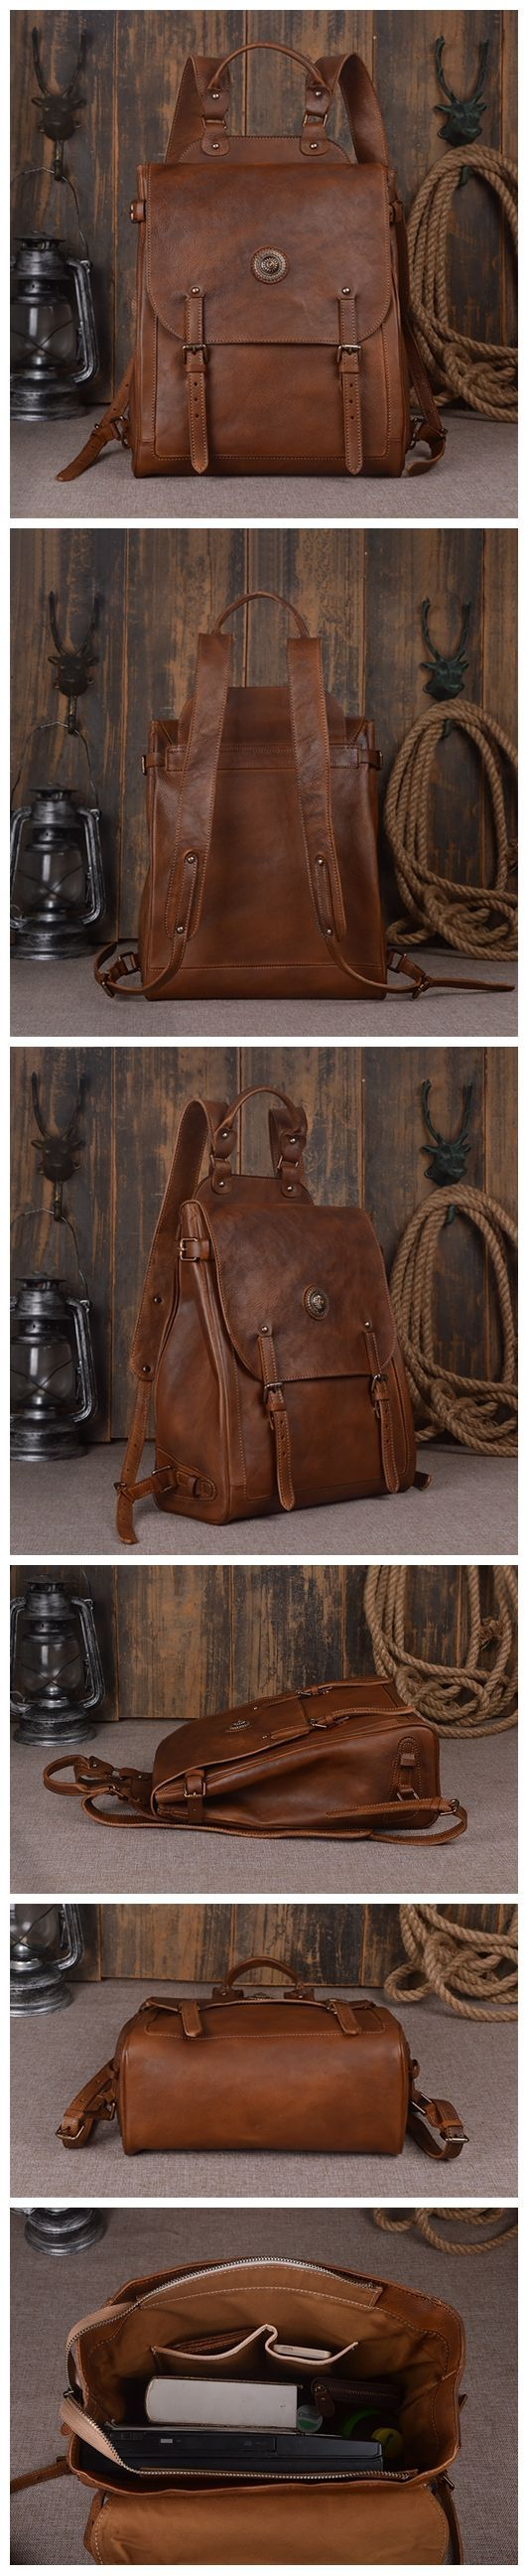 "Model Number: 9081 Dimensions: 15.3""L x 5.5""W x 13""H / 39cm(L) x 14cm(W) x 33cm(H) Weight: 3.5 lb / 1.6kg Hardware: Brass Hardware Color: Dark Brown / Retro Brown Features: • Genuine Natural Leather •"